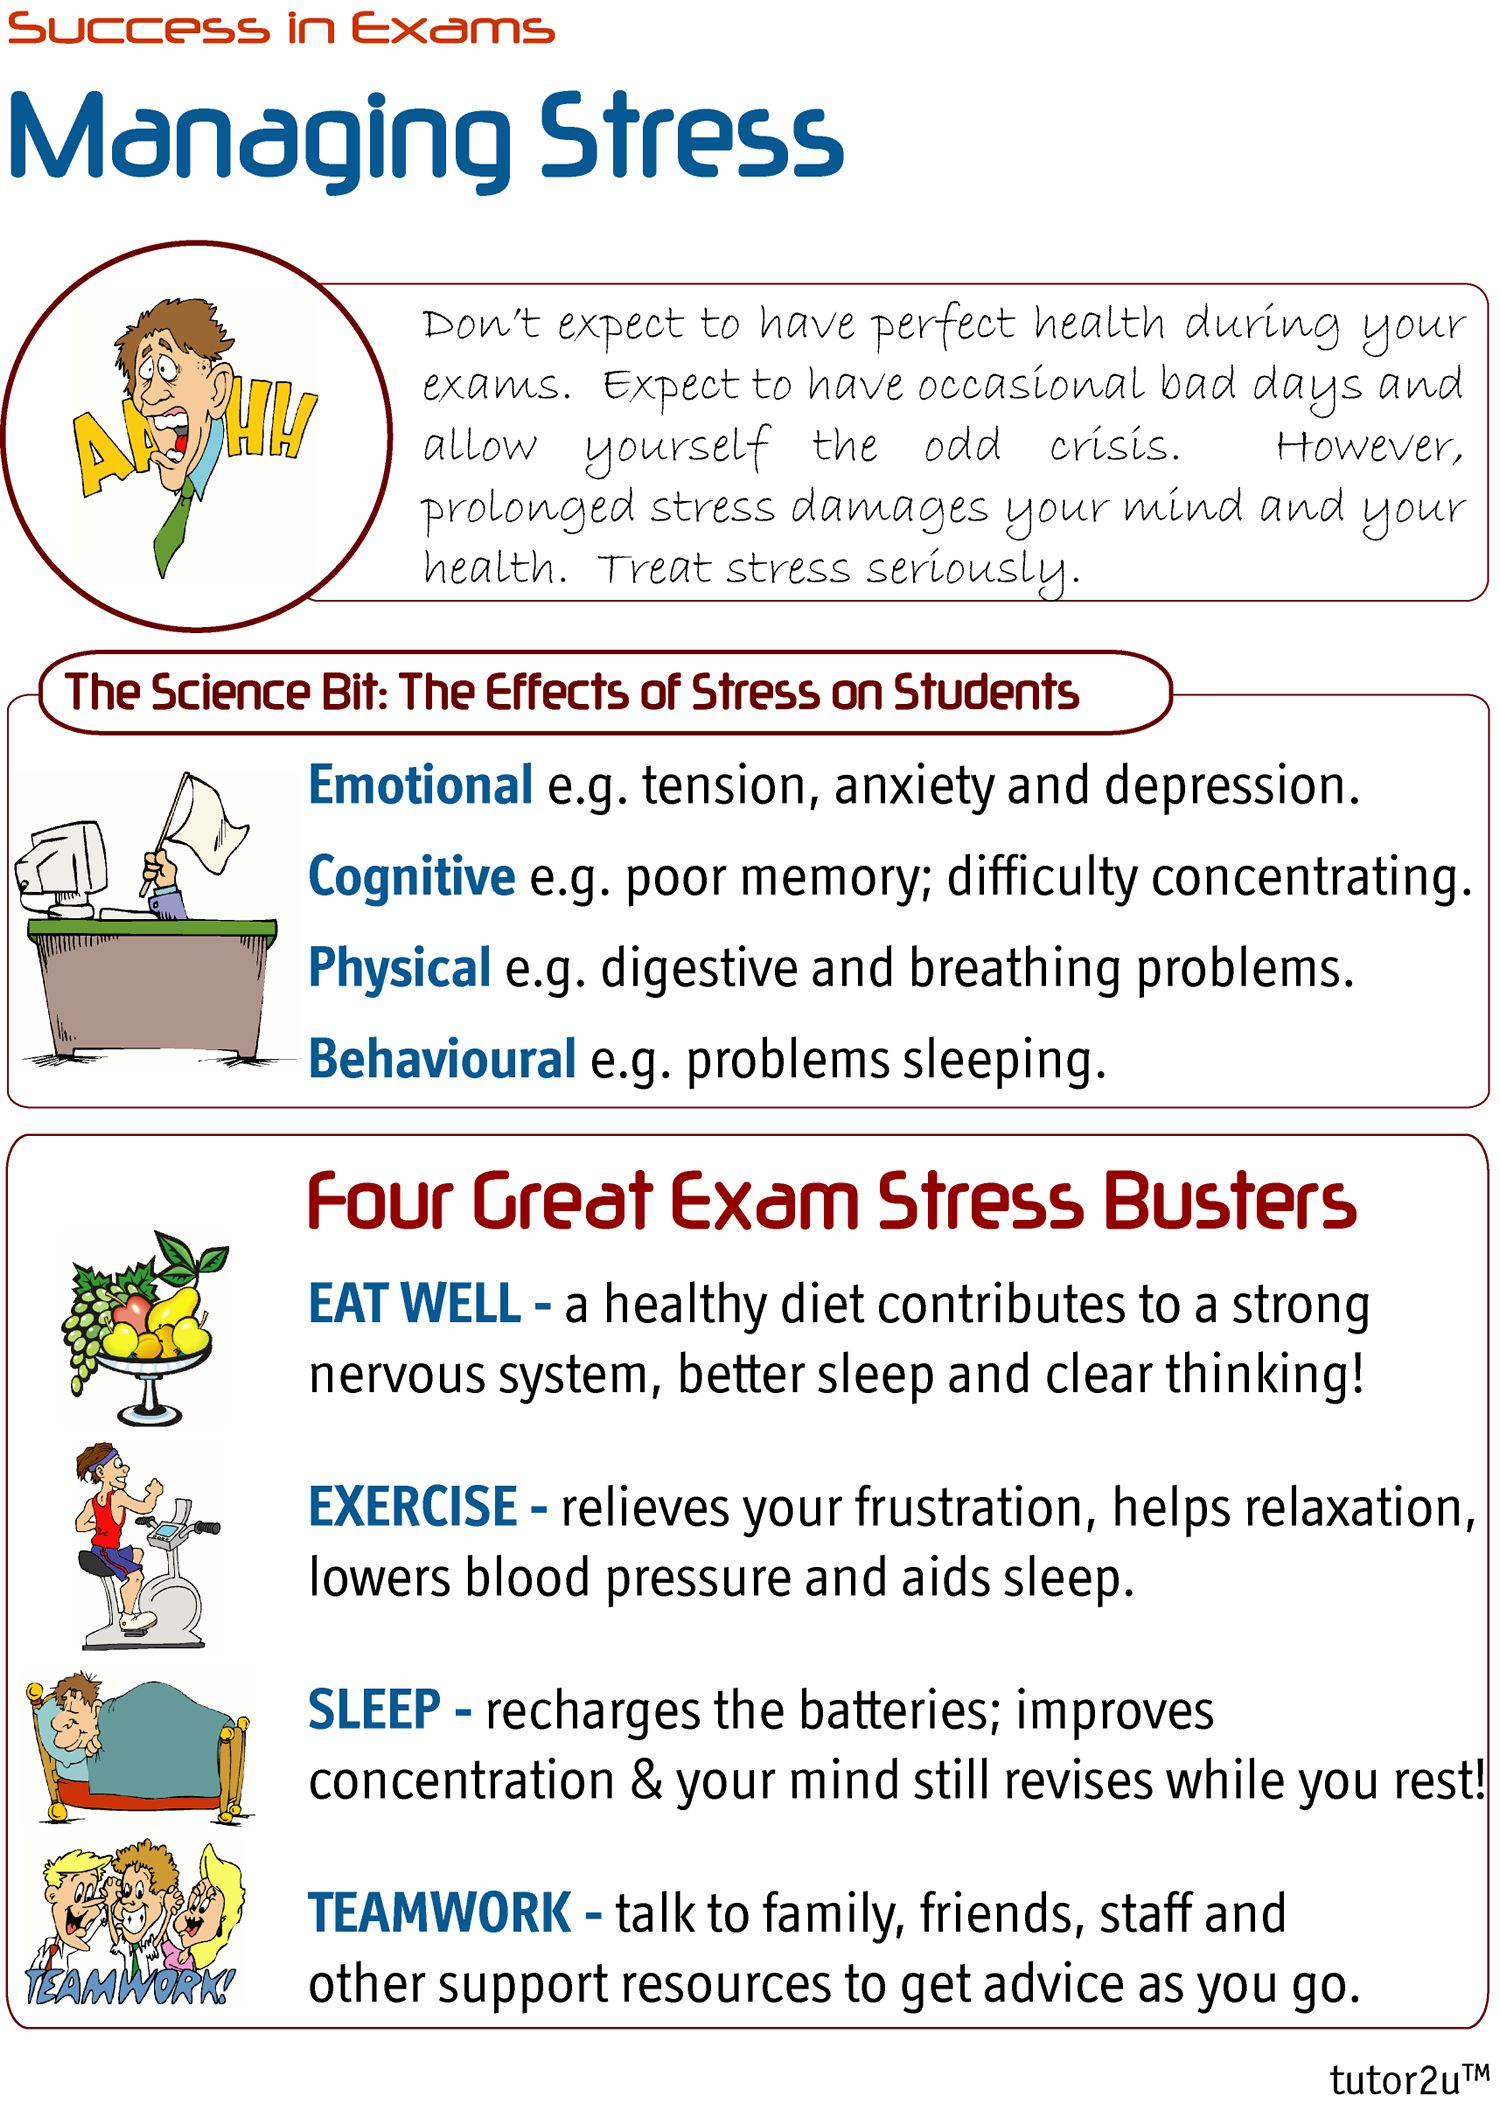 Four Great Exam Stress Busters